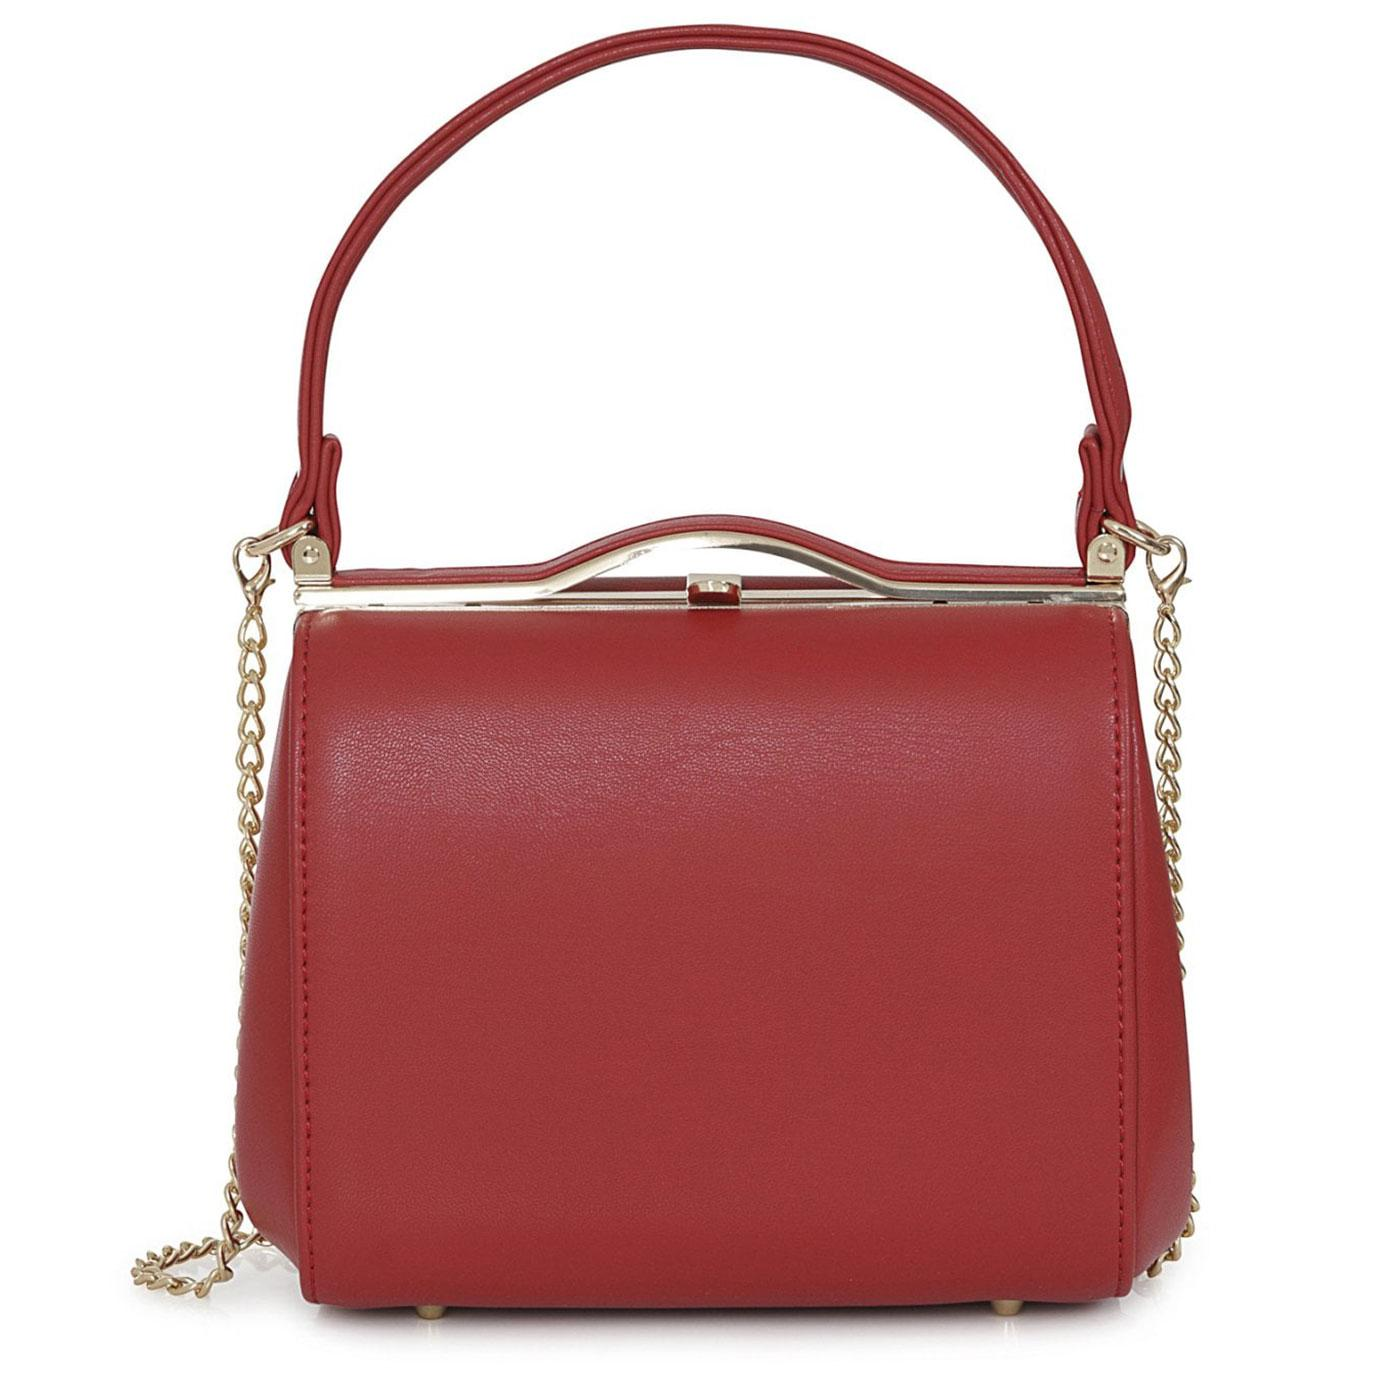 Carrie COLLECTIF 50s Vintage Style Handbag in Red